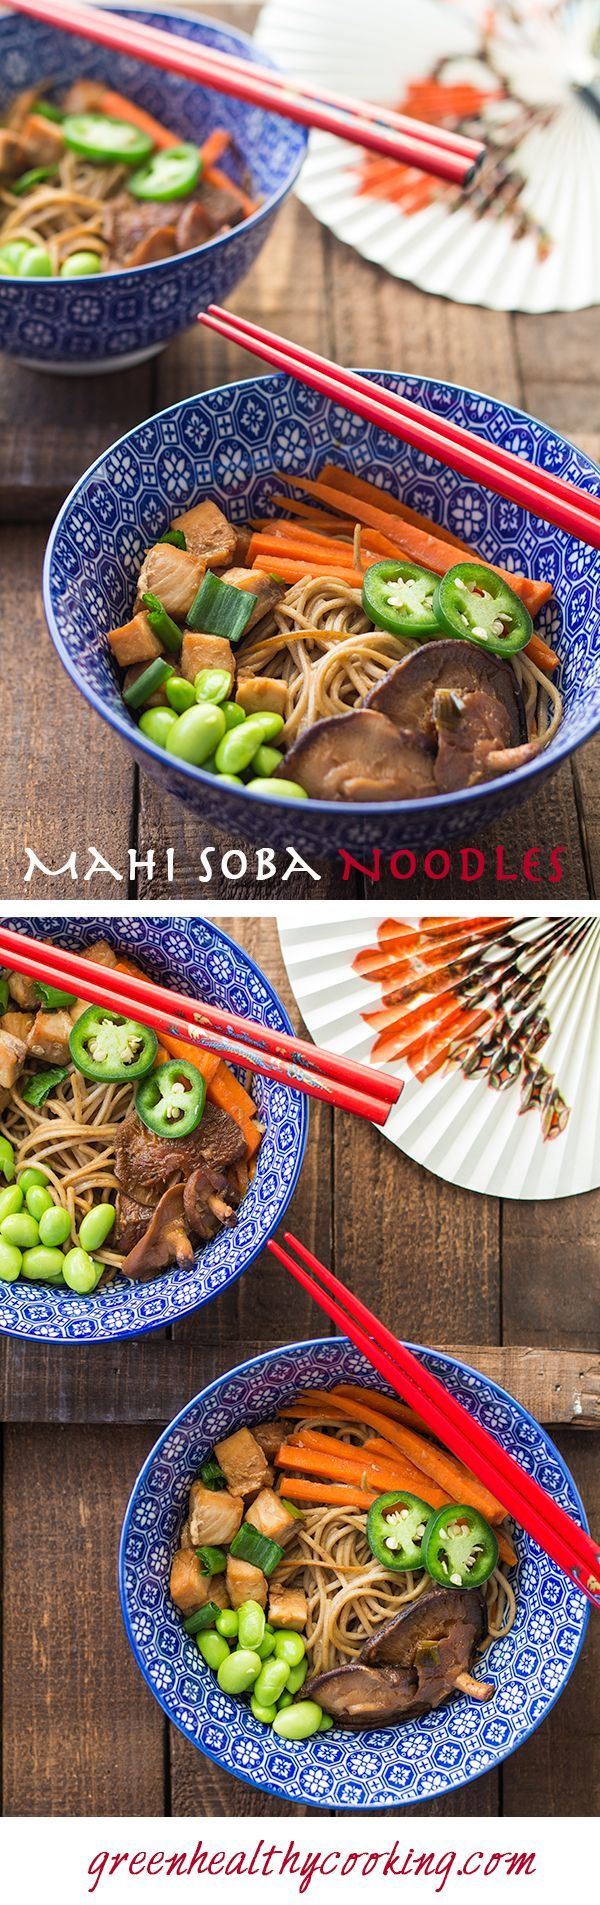 A recipe for a nutrient dense Mahi Mahi Soba Noodle Stir-Fry with edamame, shiitake mushrooms and carrots. Perfect on busy weekdays for lunch or dinner.